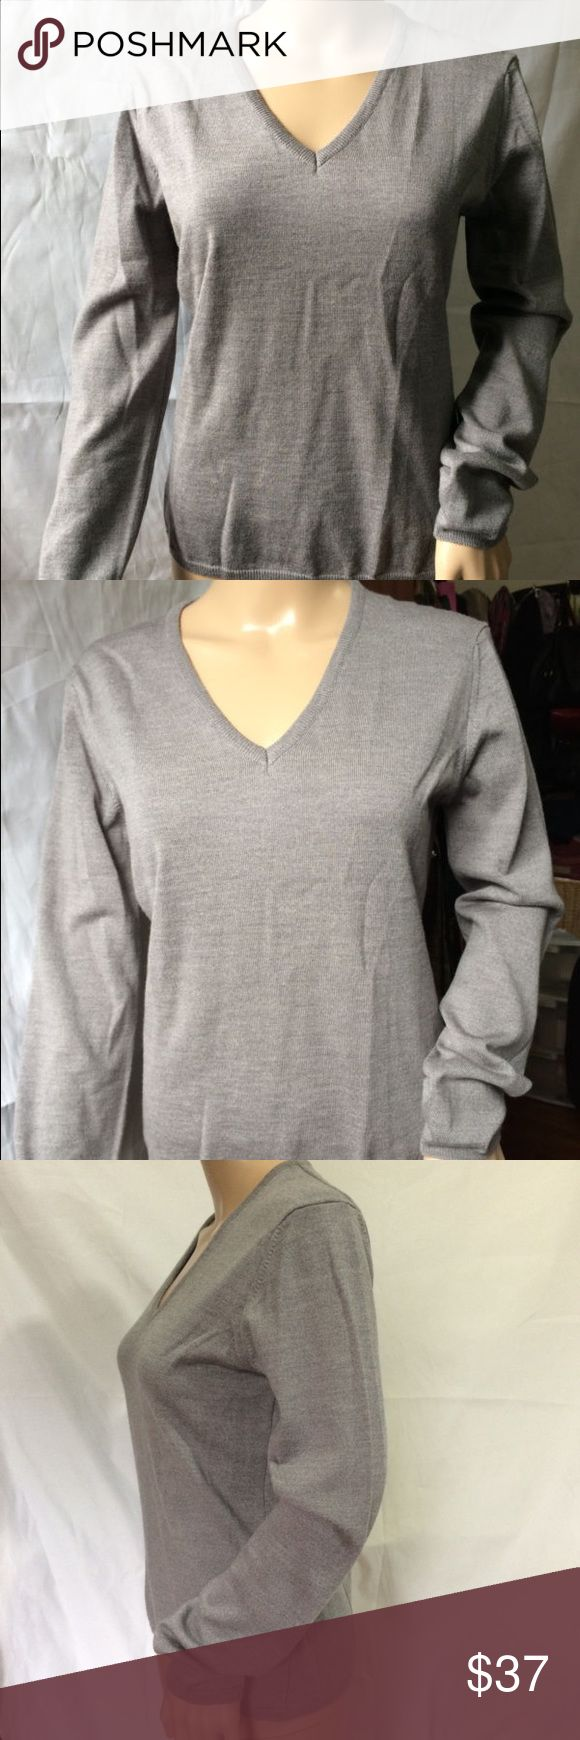 """Thomas Pink Merino Wool V-neck Sweater Size M New without tags.      SIZE :M . Shoulder   (Back side):16"""" .Bust/Chest Under armpit    ( around):36.5"""" . Waist  ( around):32"""" . Sleeve:23.5"""" . Cuff / wrist   (around):8"""" . Bottom Hem ( around):34"""" . Length (high):23"""" NOTE: .5"""" MEAN A HALF INCH = ½"""" Brand , size tag and retail tags are missing Measures are from Medium How ever please view measures in the listing. Only does have one tag what you see in the last picture. *Please check, some clothes…"""